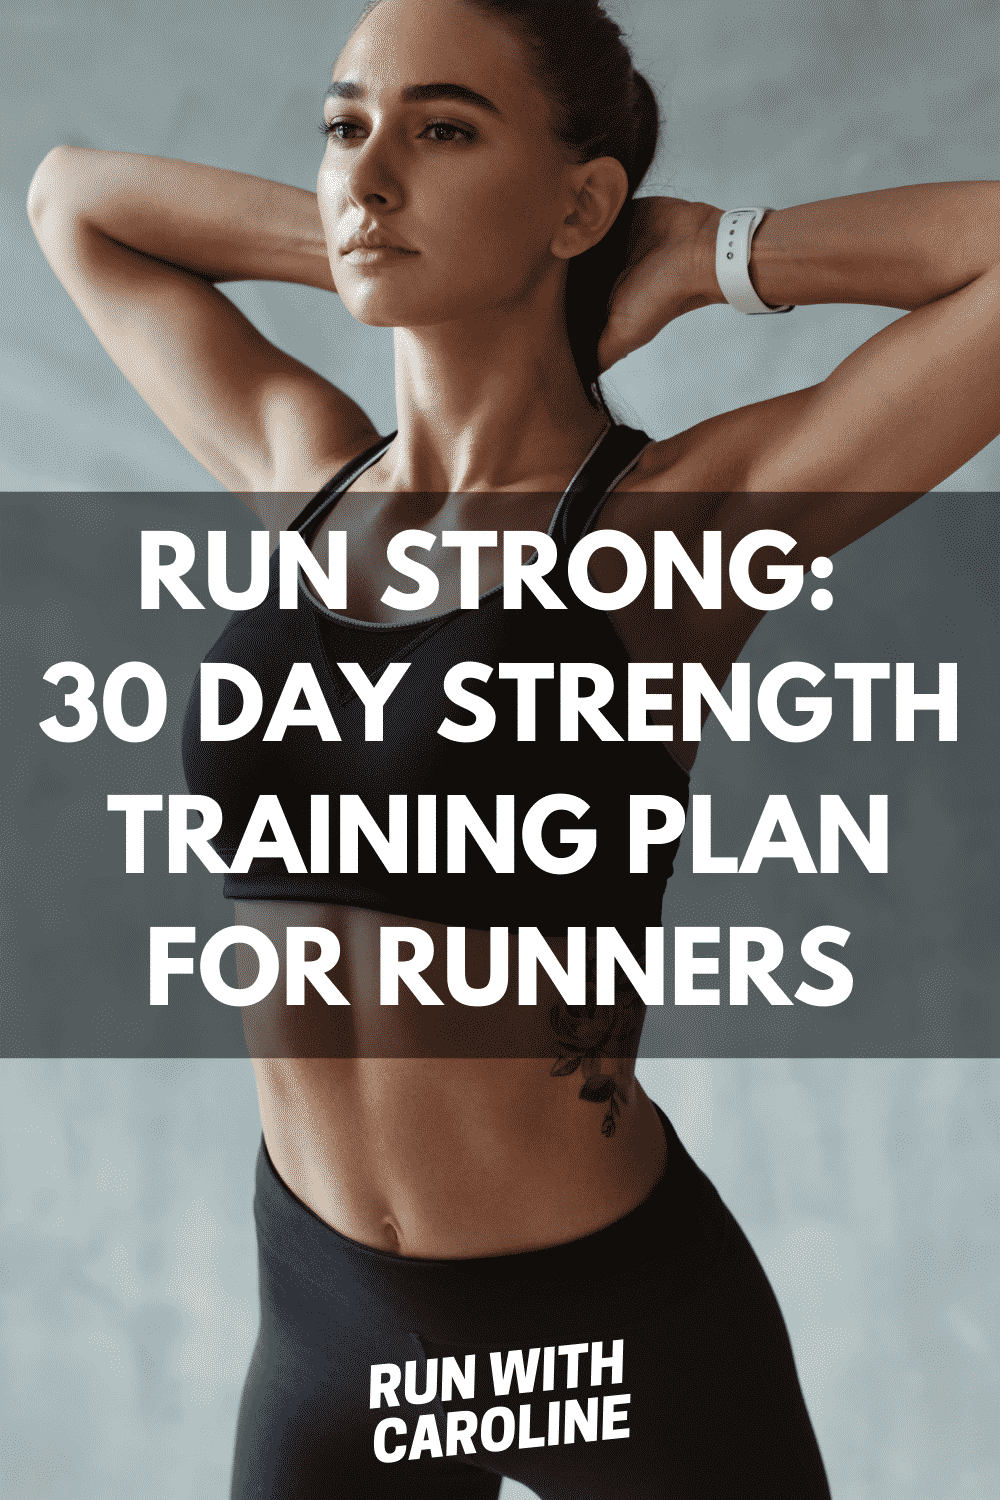 Run strong: 30 day strength training plan for runners